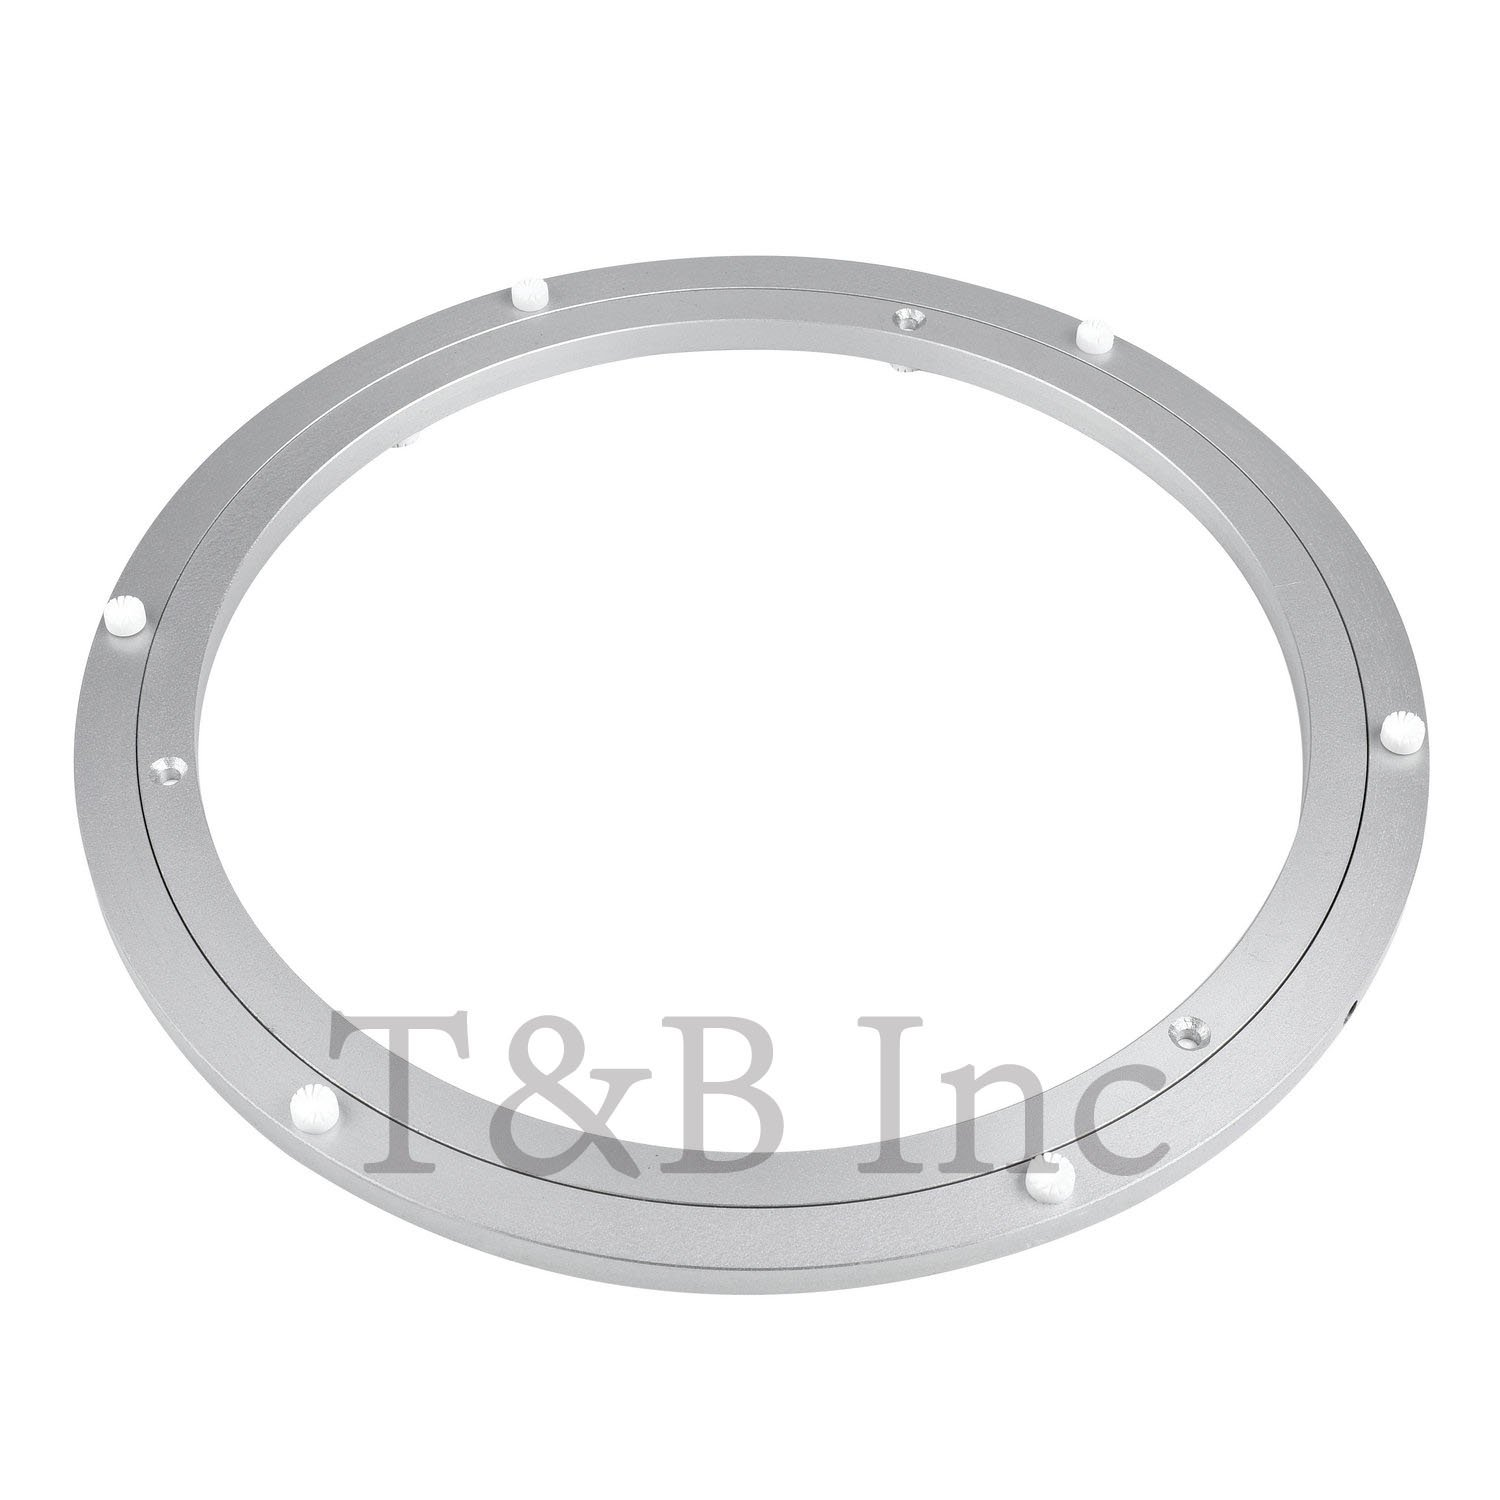 T&B 12 Inch Diameter Aluminum Metal Lazy Susan Hardware Rotating Turntable Bearings Swivel Plate 300mm Silver Turntable on Dining-table